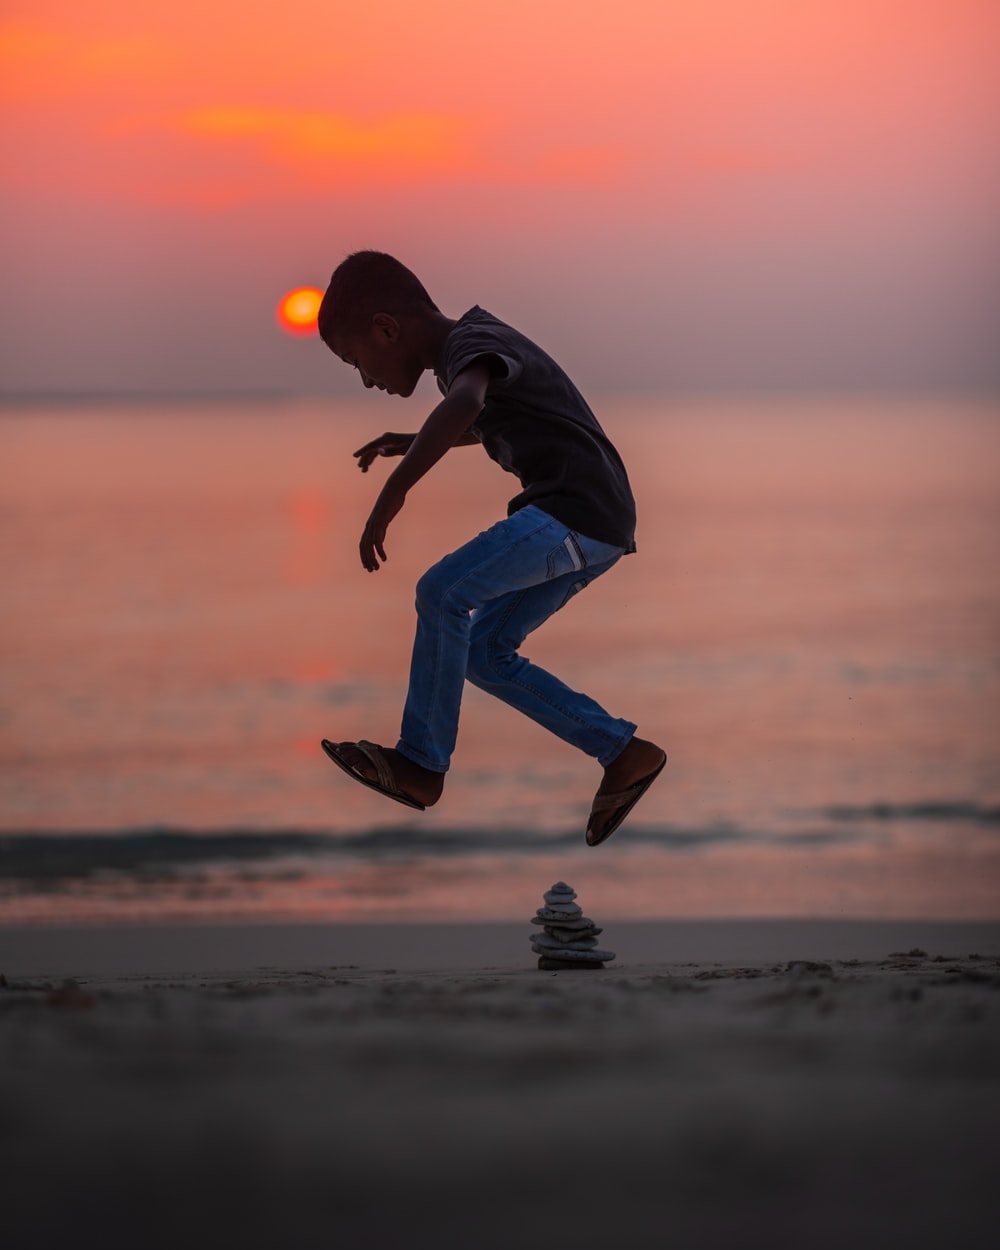 boy jumping near stack of stones on seashore during golden hour